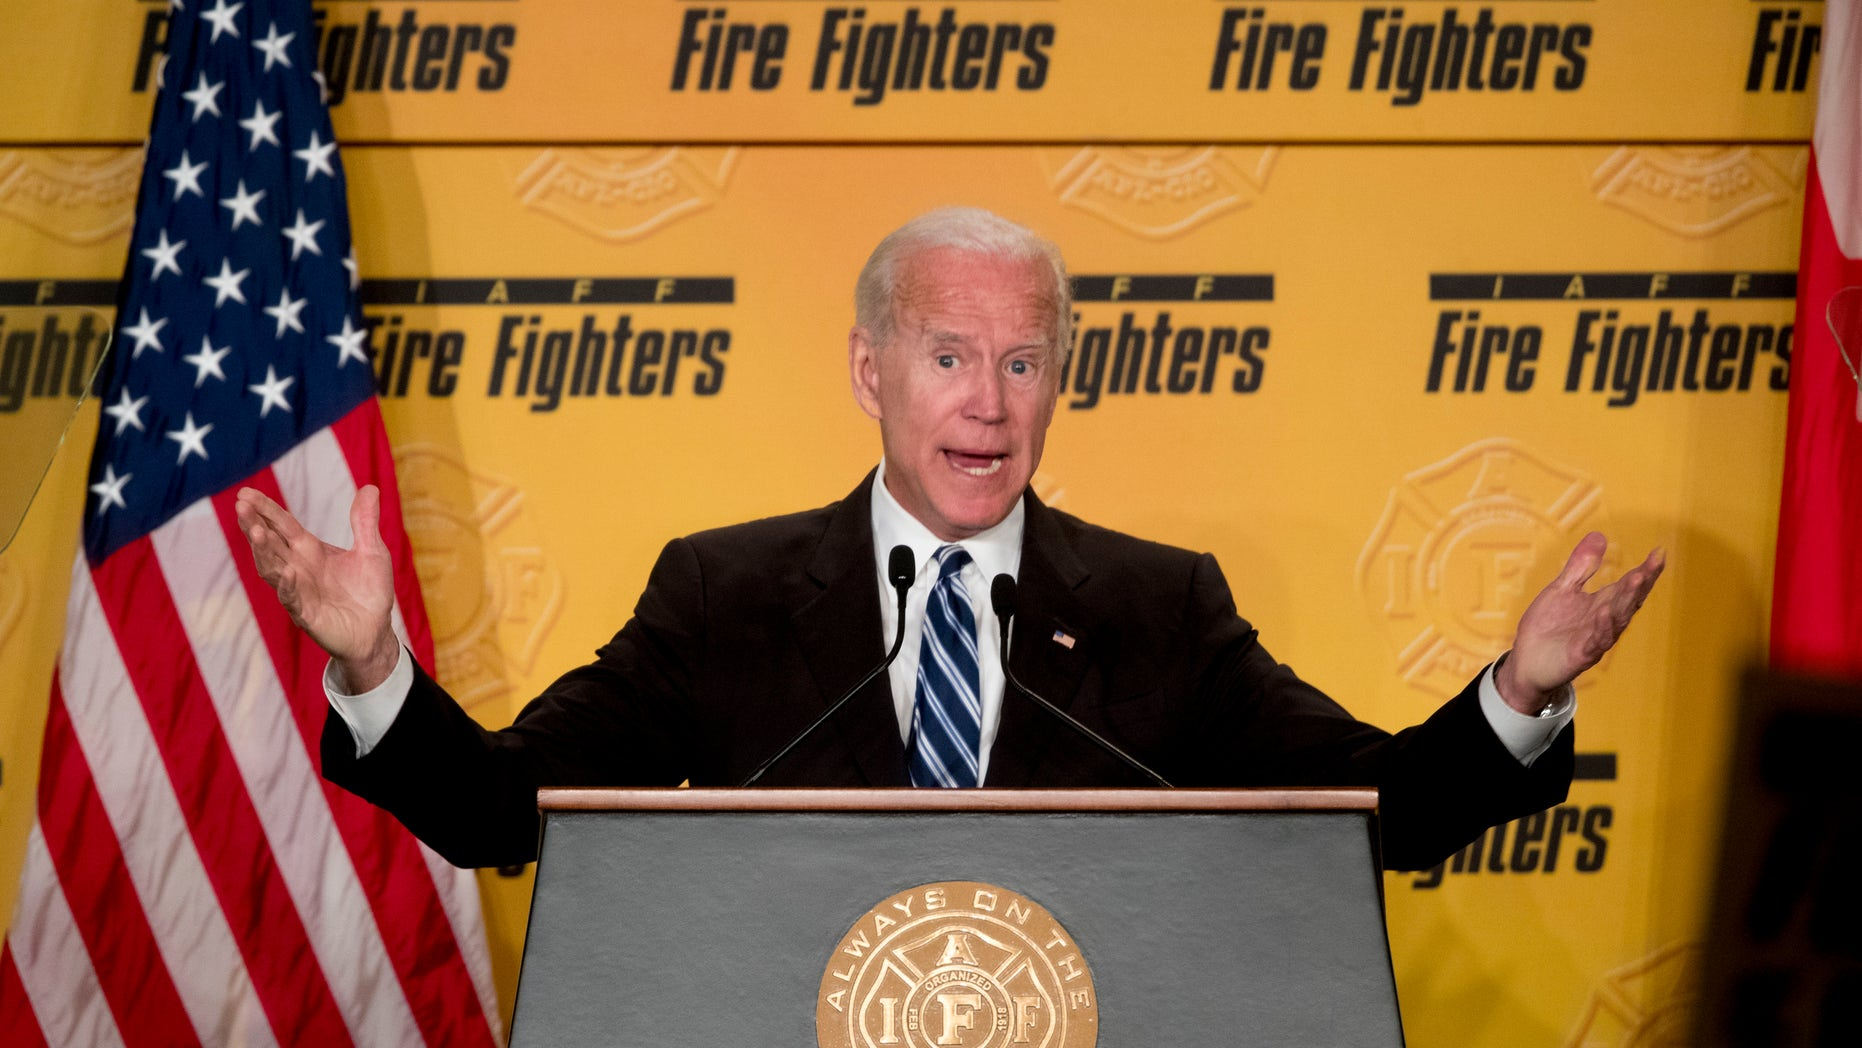 Former Vice President Joe Biden speaks in Washington, Tuesday, March 12, 2019, amid growing expectations he'll soon announce he's running for president. (Associated Press)